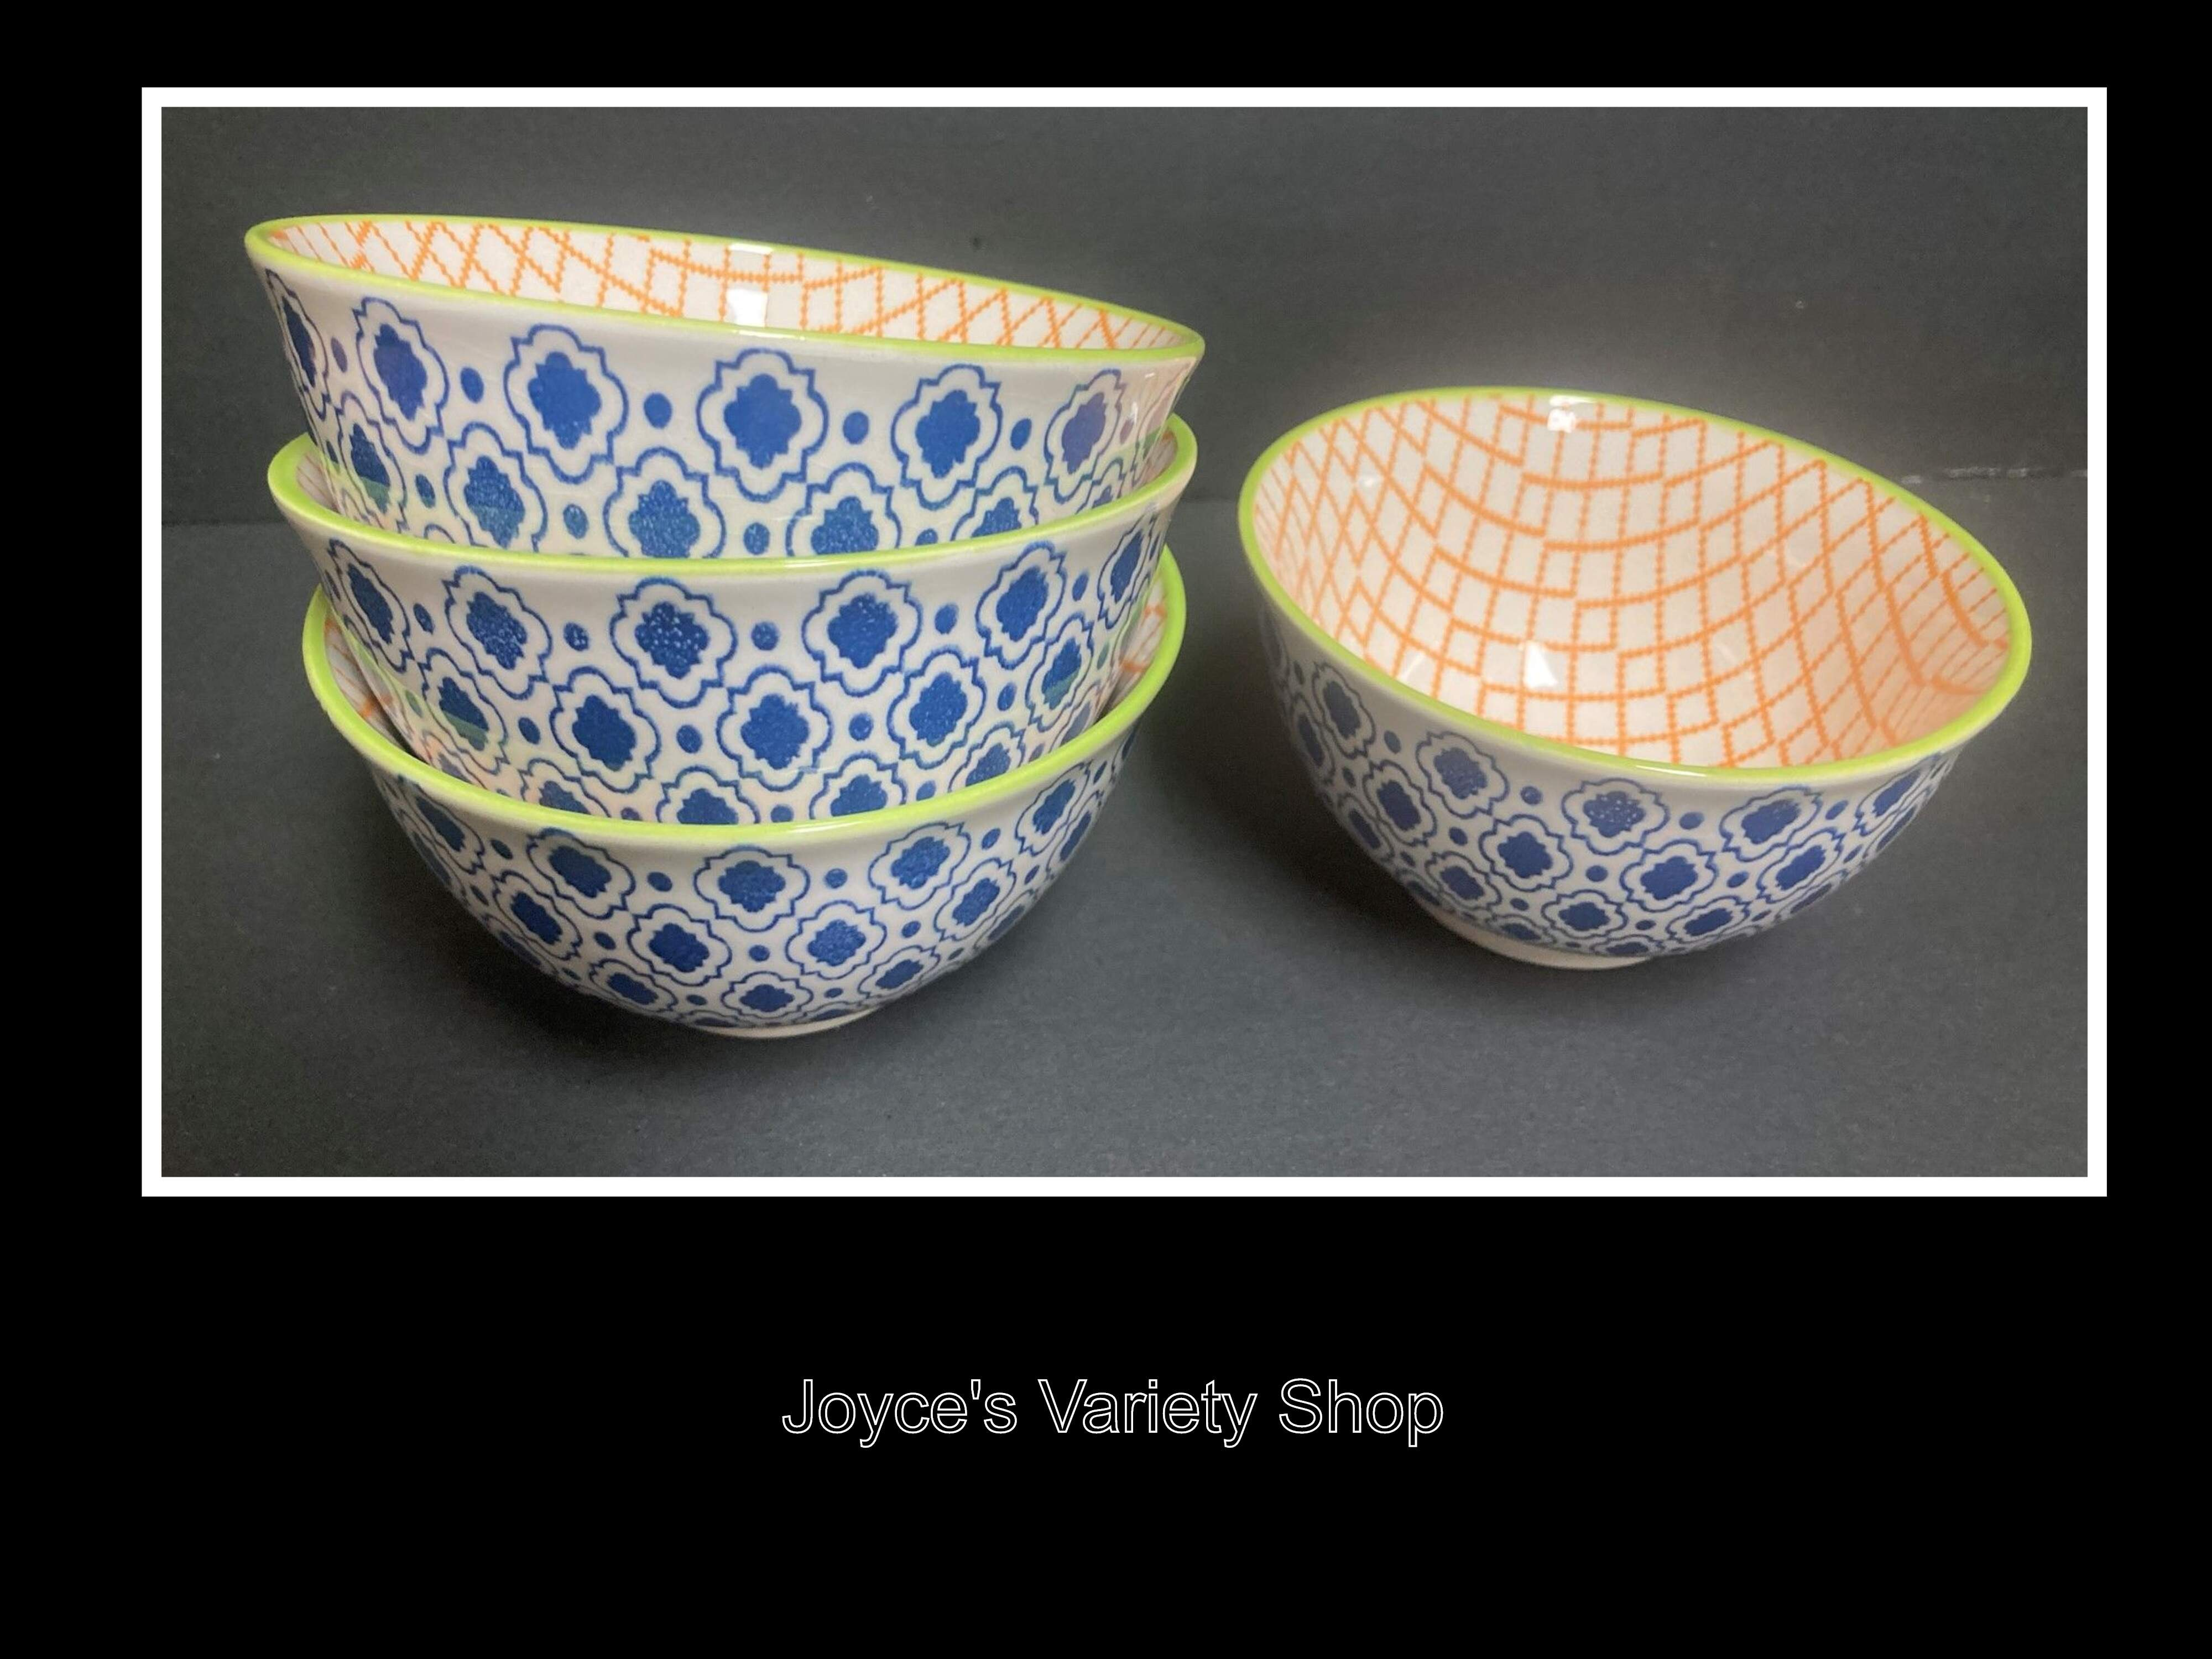 "Ceramic Decor Dessert Bowls Geometric 5"" Set of 4 Orange & Blue Patterns"